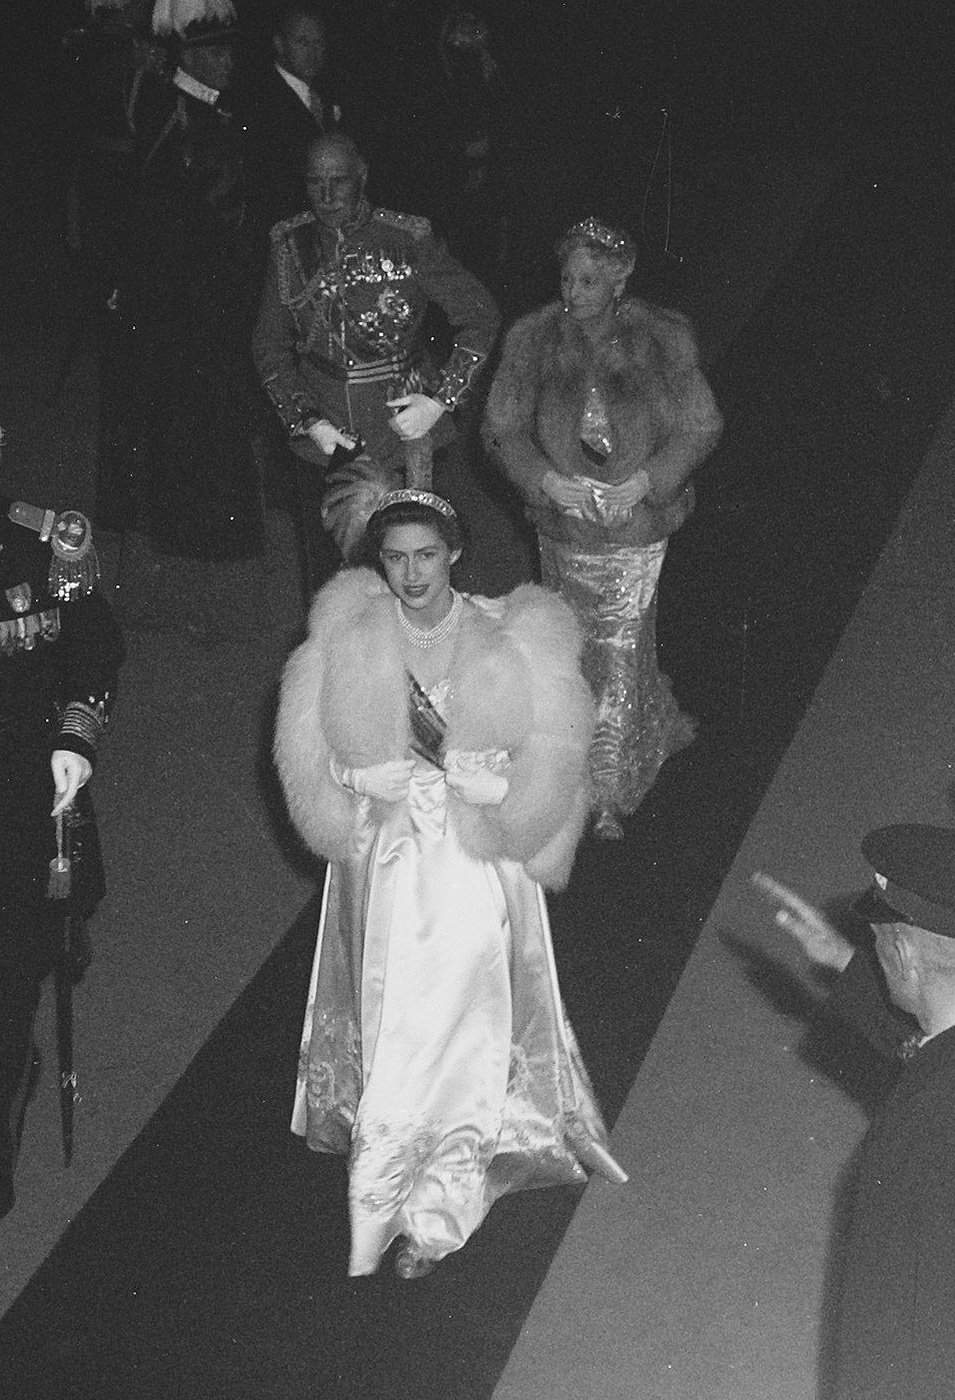 Prince Alexander, Earl of Athlone and Princess Alice, Countess of Athlone accompany Princess Margaret during the inauguration celebrations for Queen Juliana of the Netherlands, September 1948